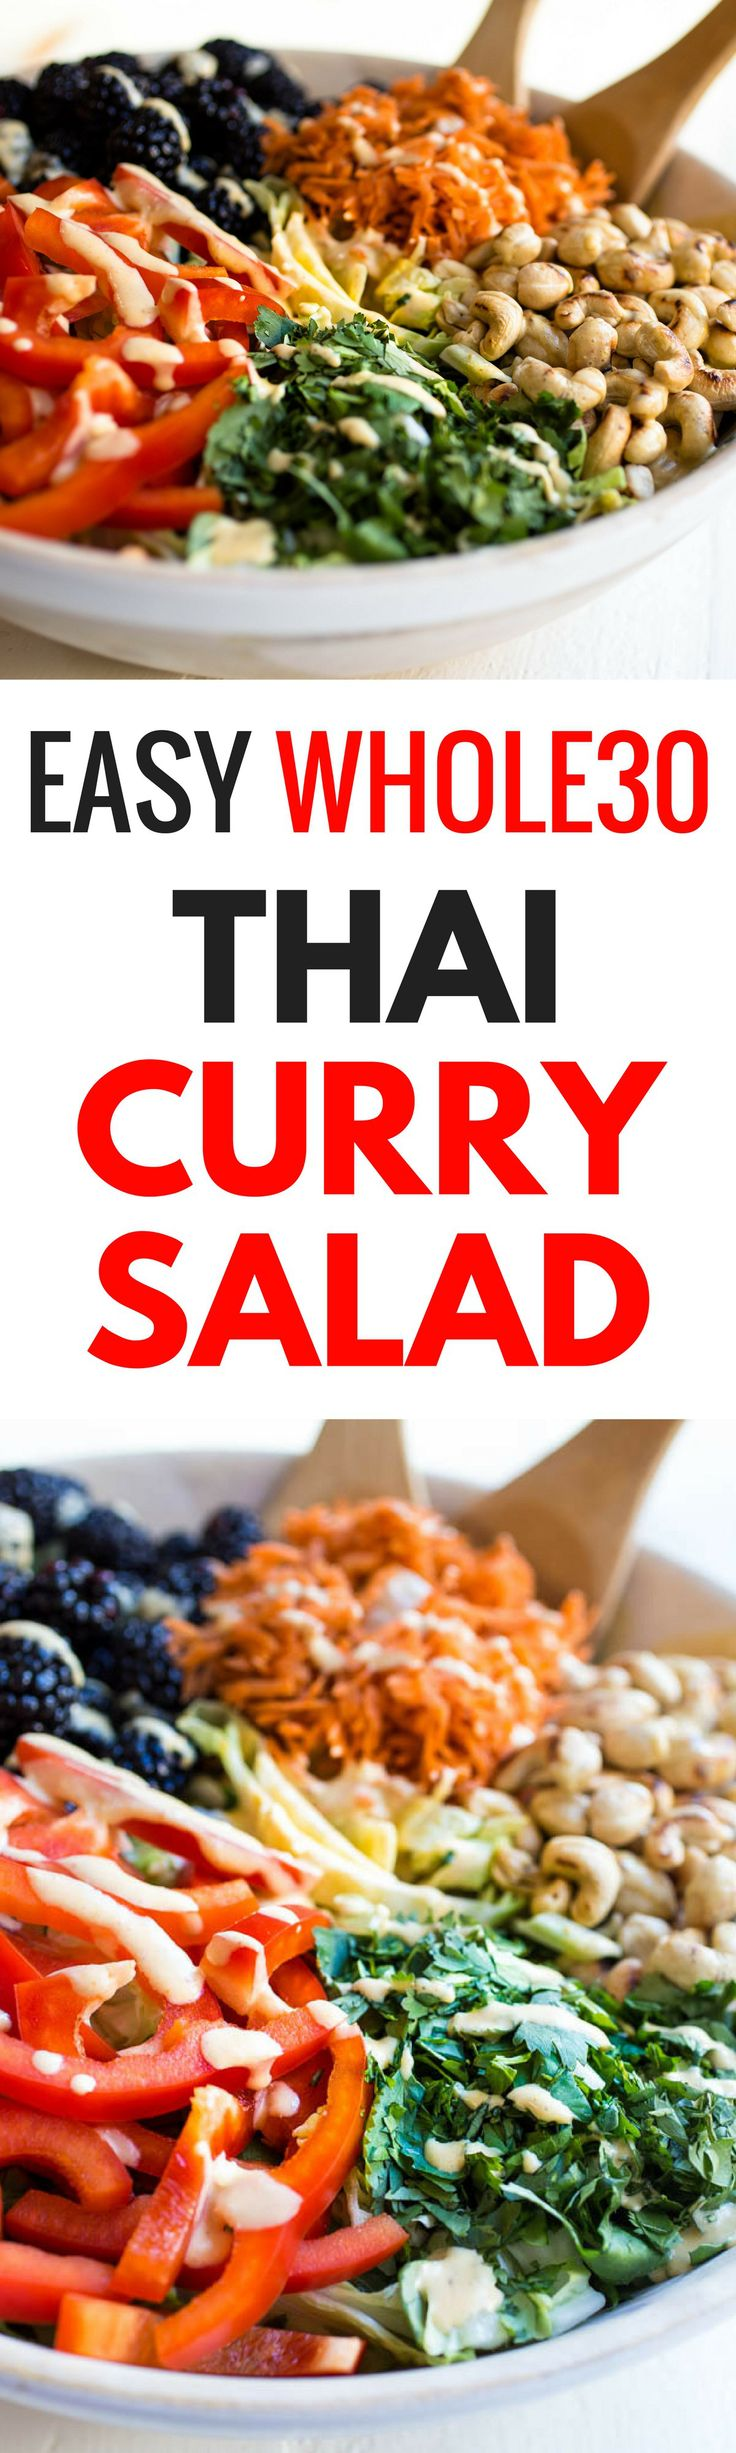 An easy recipe for a delicious, paleo, Whole30 compliant & vegan Thai Curry Salad that will leave you feeling full & satisfied. Whole30 salad recipes. Whole30 dinner recipes. Easy Whole30 recipes can be found here. Quick, easy, healthy, dairy free Thai Cu asian detox soup